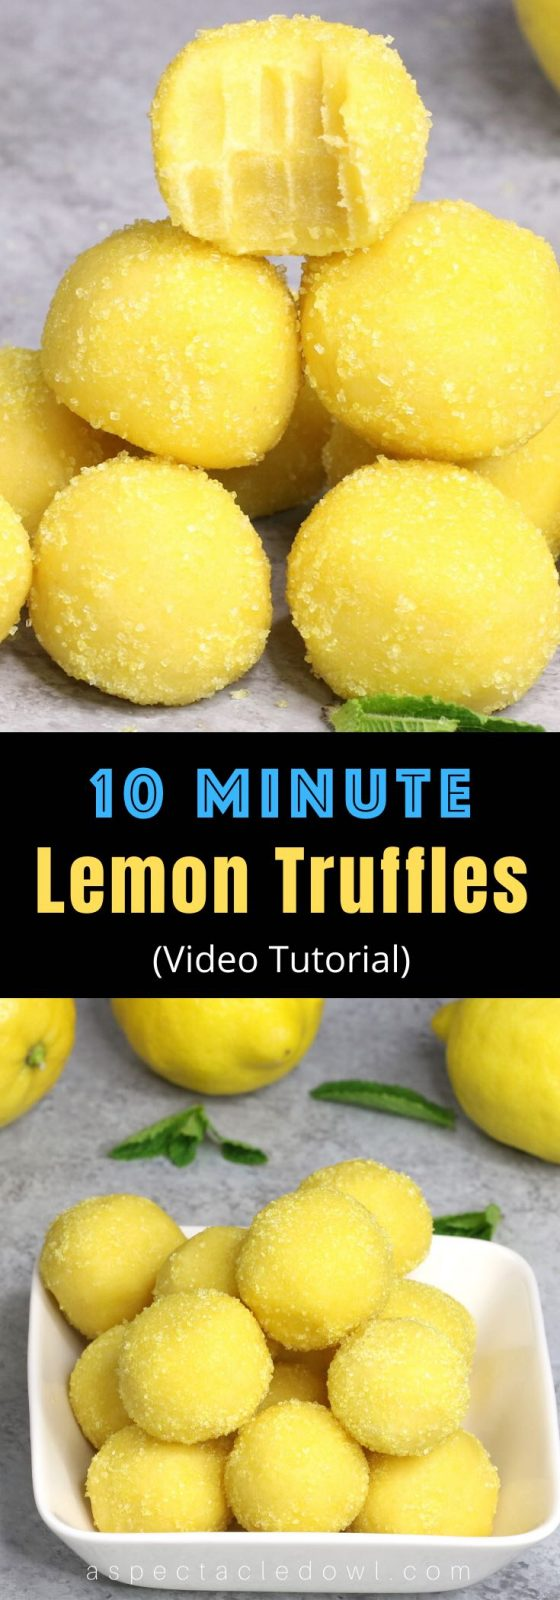 These Homemade Lemon Truffles are tangy, creamy and sweet. All you need is a few simple ingredients. After mixing the cake mix, sugar, butter, and lemon juice together, roll into small balls. #LemonTruffles